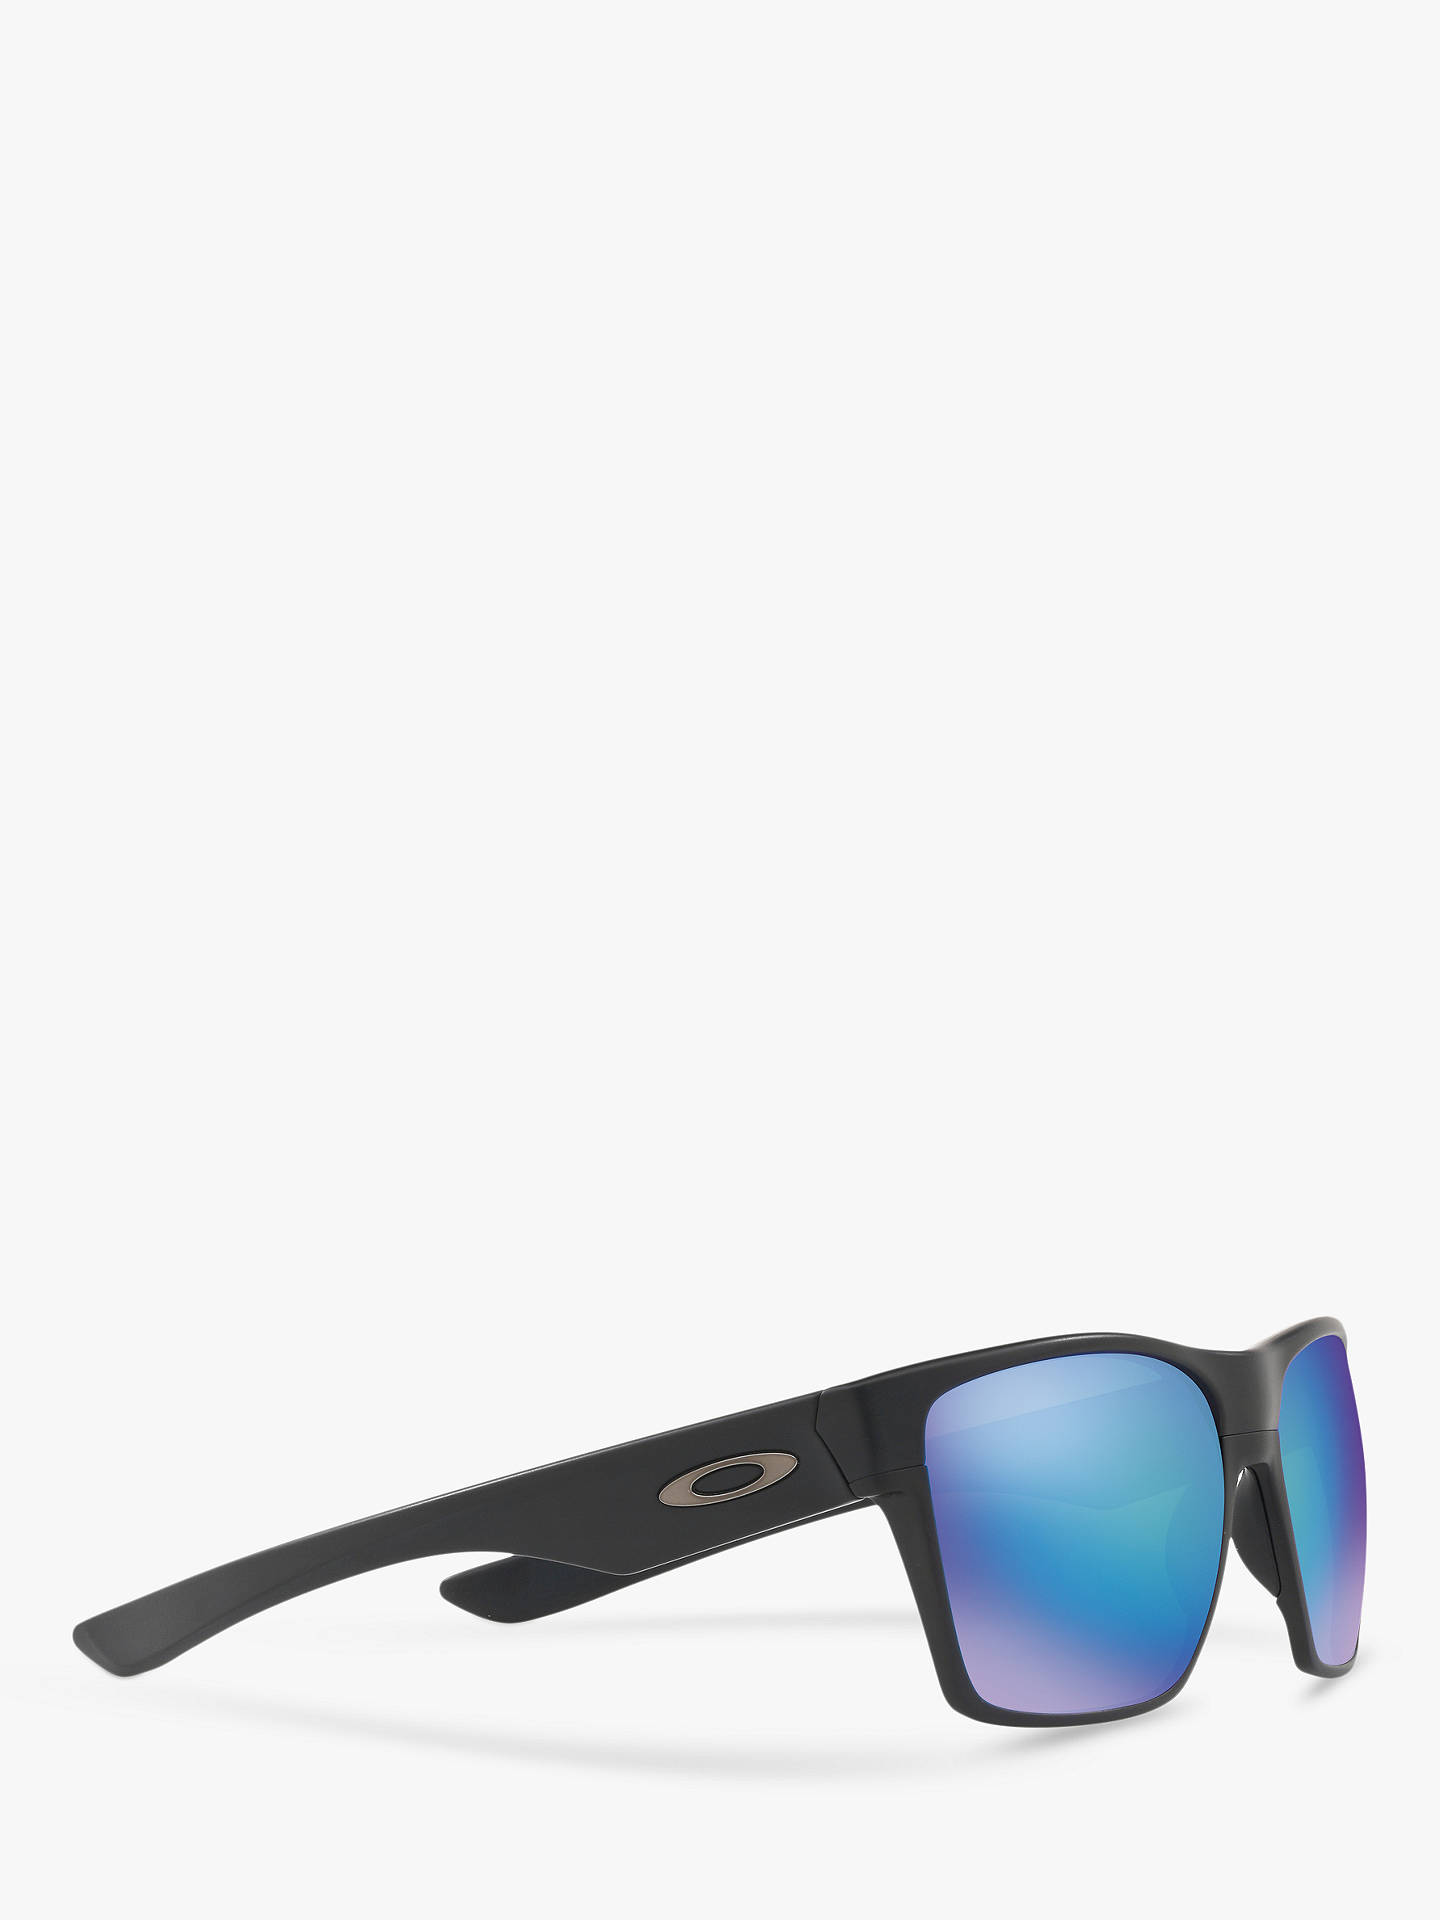 Oakley OO9350 Two Face XL Prizm Polarised Square Sunglasses at John ... ee7f057e68ece